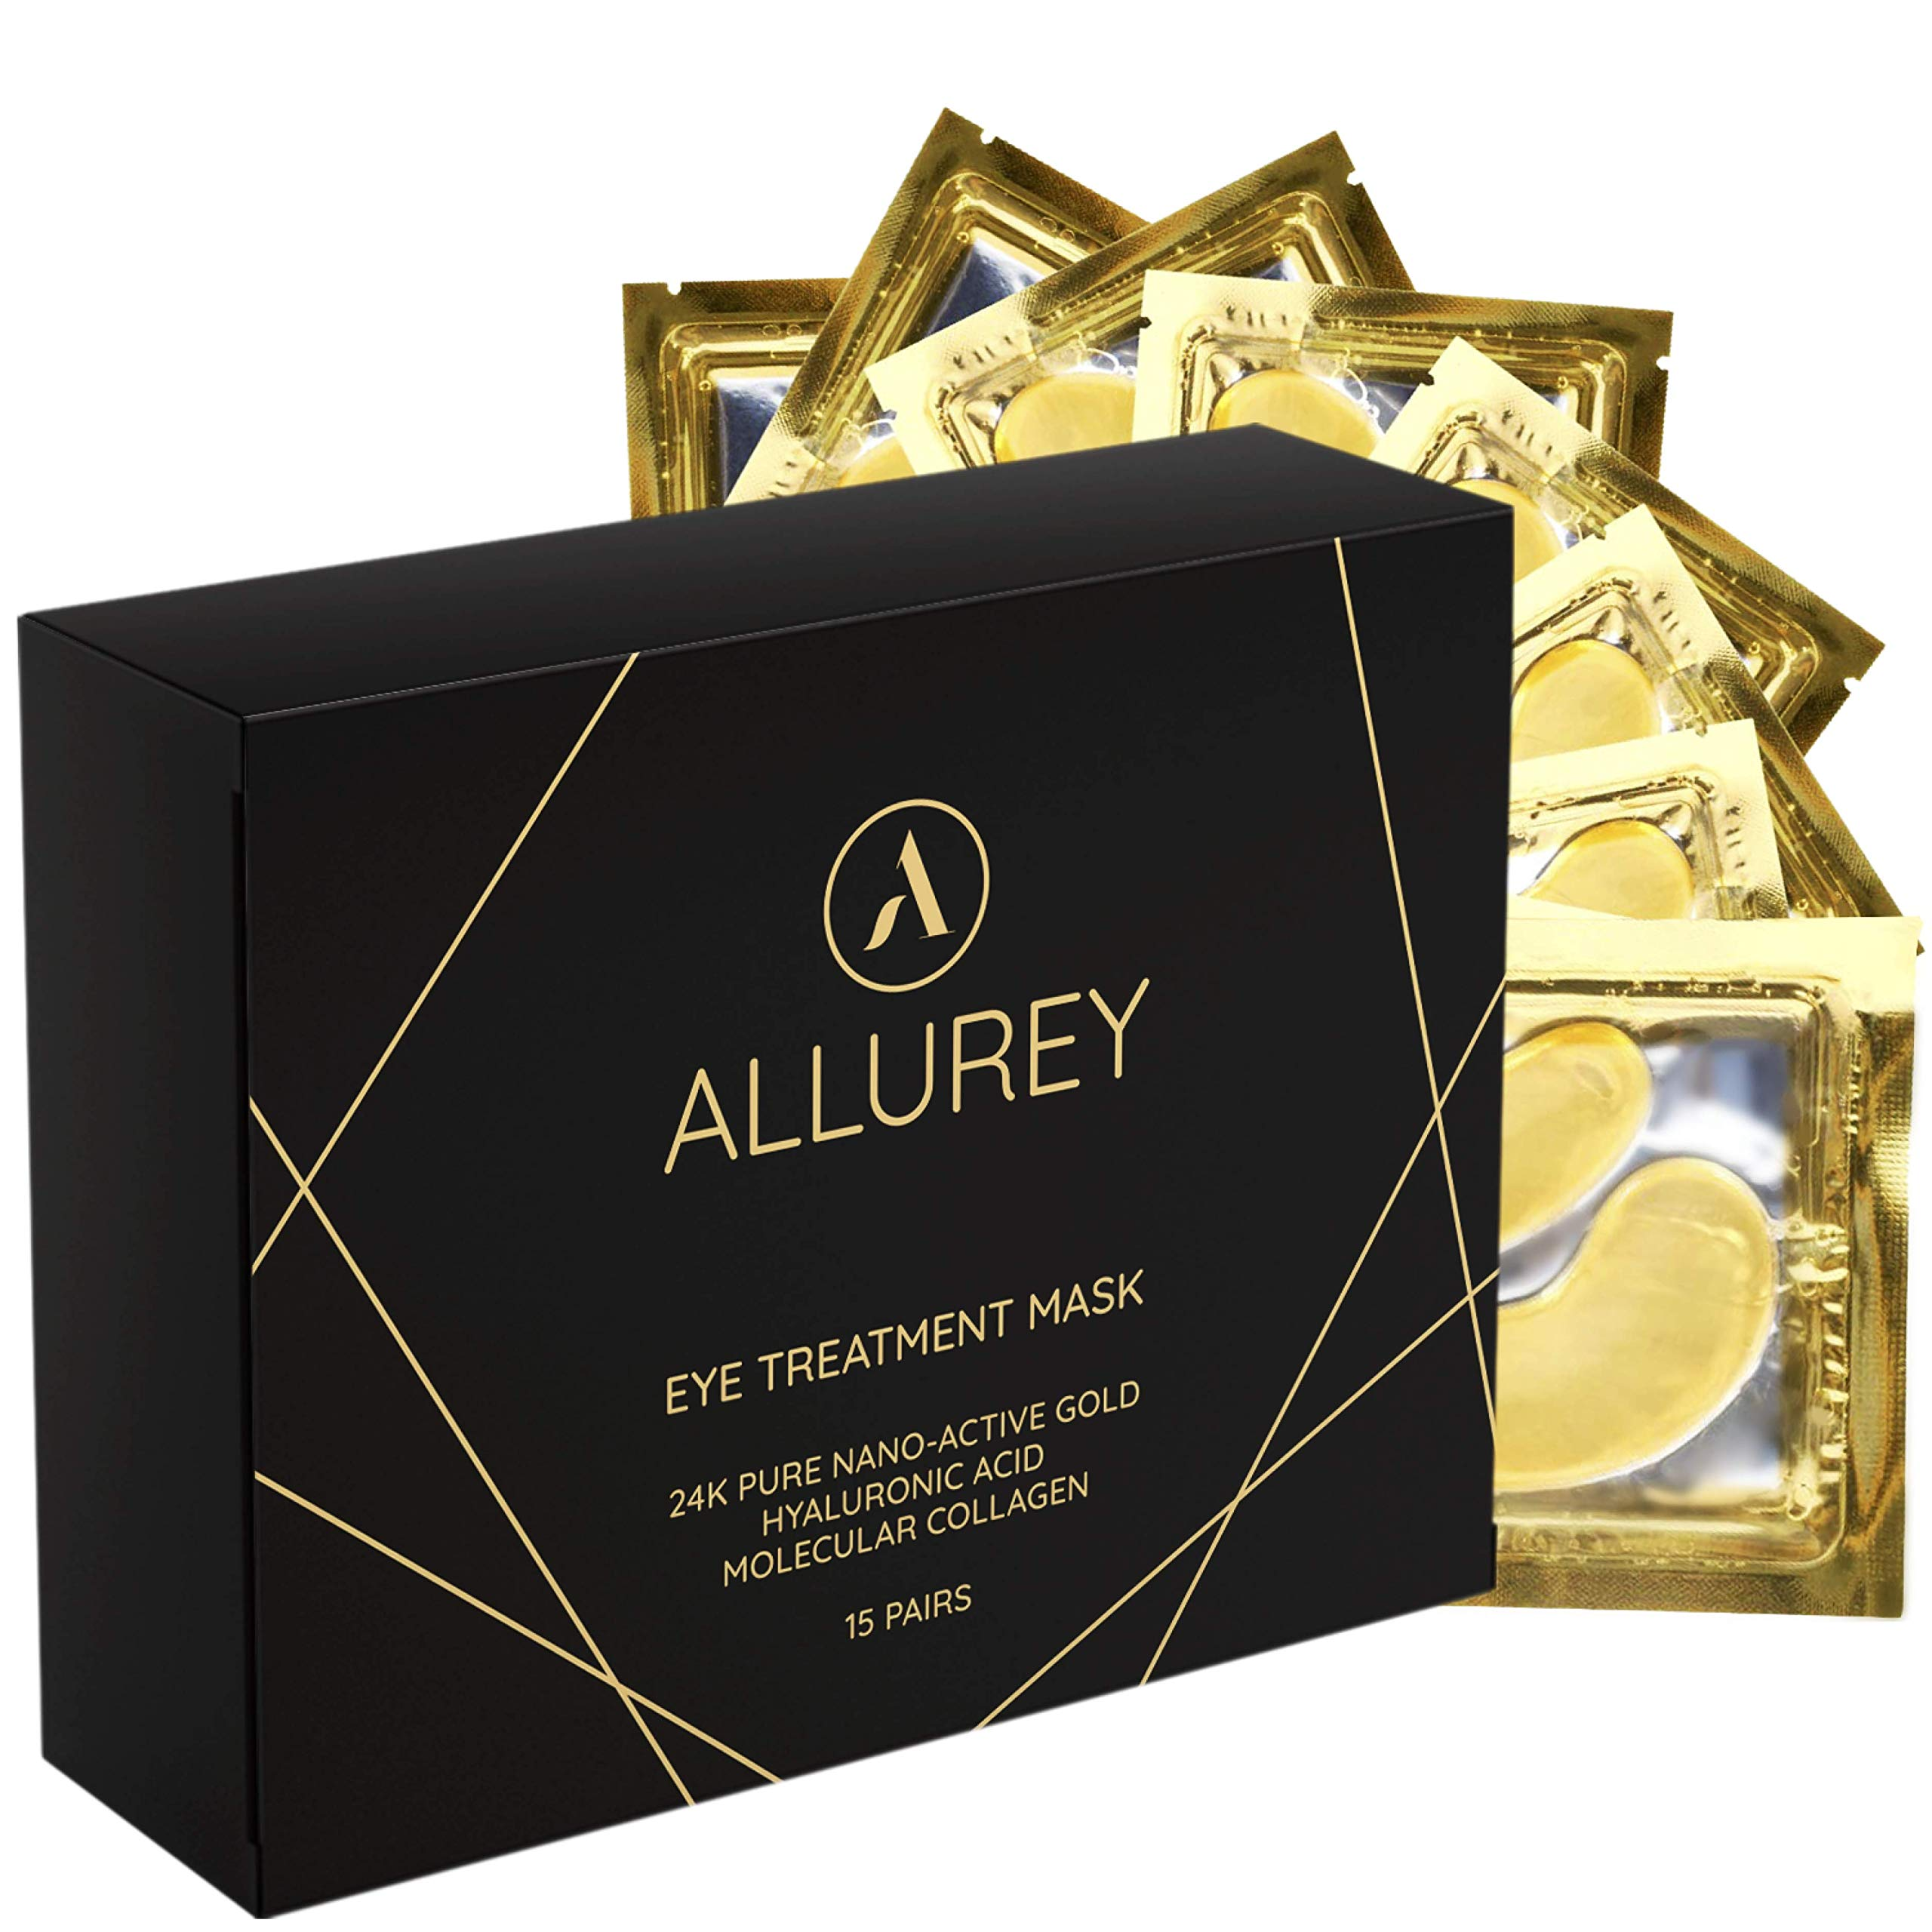 Under Eye Collagen Patch, 24K Gold Anti-Aging Mask, Treatment Pads for Puffy Eyes & Bags, Dark Circles and Wrinkles, with Hyaluronic Acid, Hydrogel, Deep Moisturizing Improves elasticity, 15 Pairs by ALLUREY